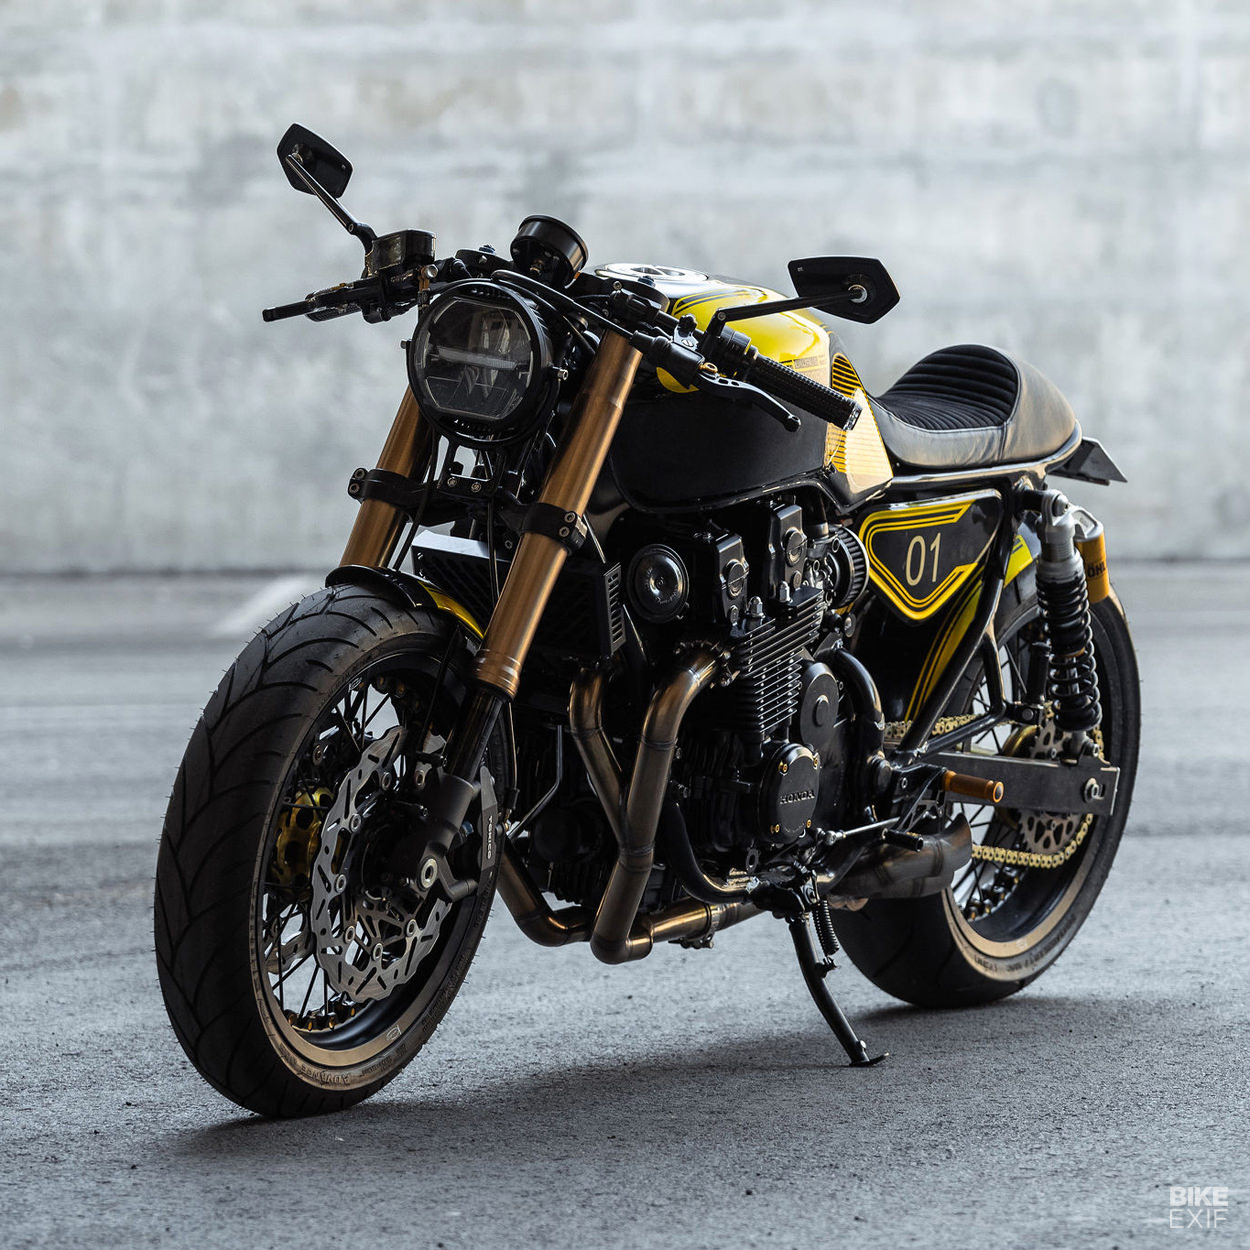 Honda CB 750 Seven-Fifty cafe racer by Unik Edition